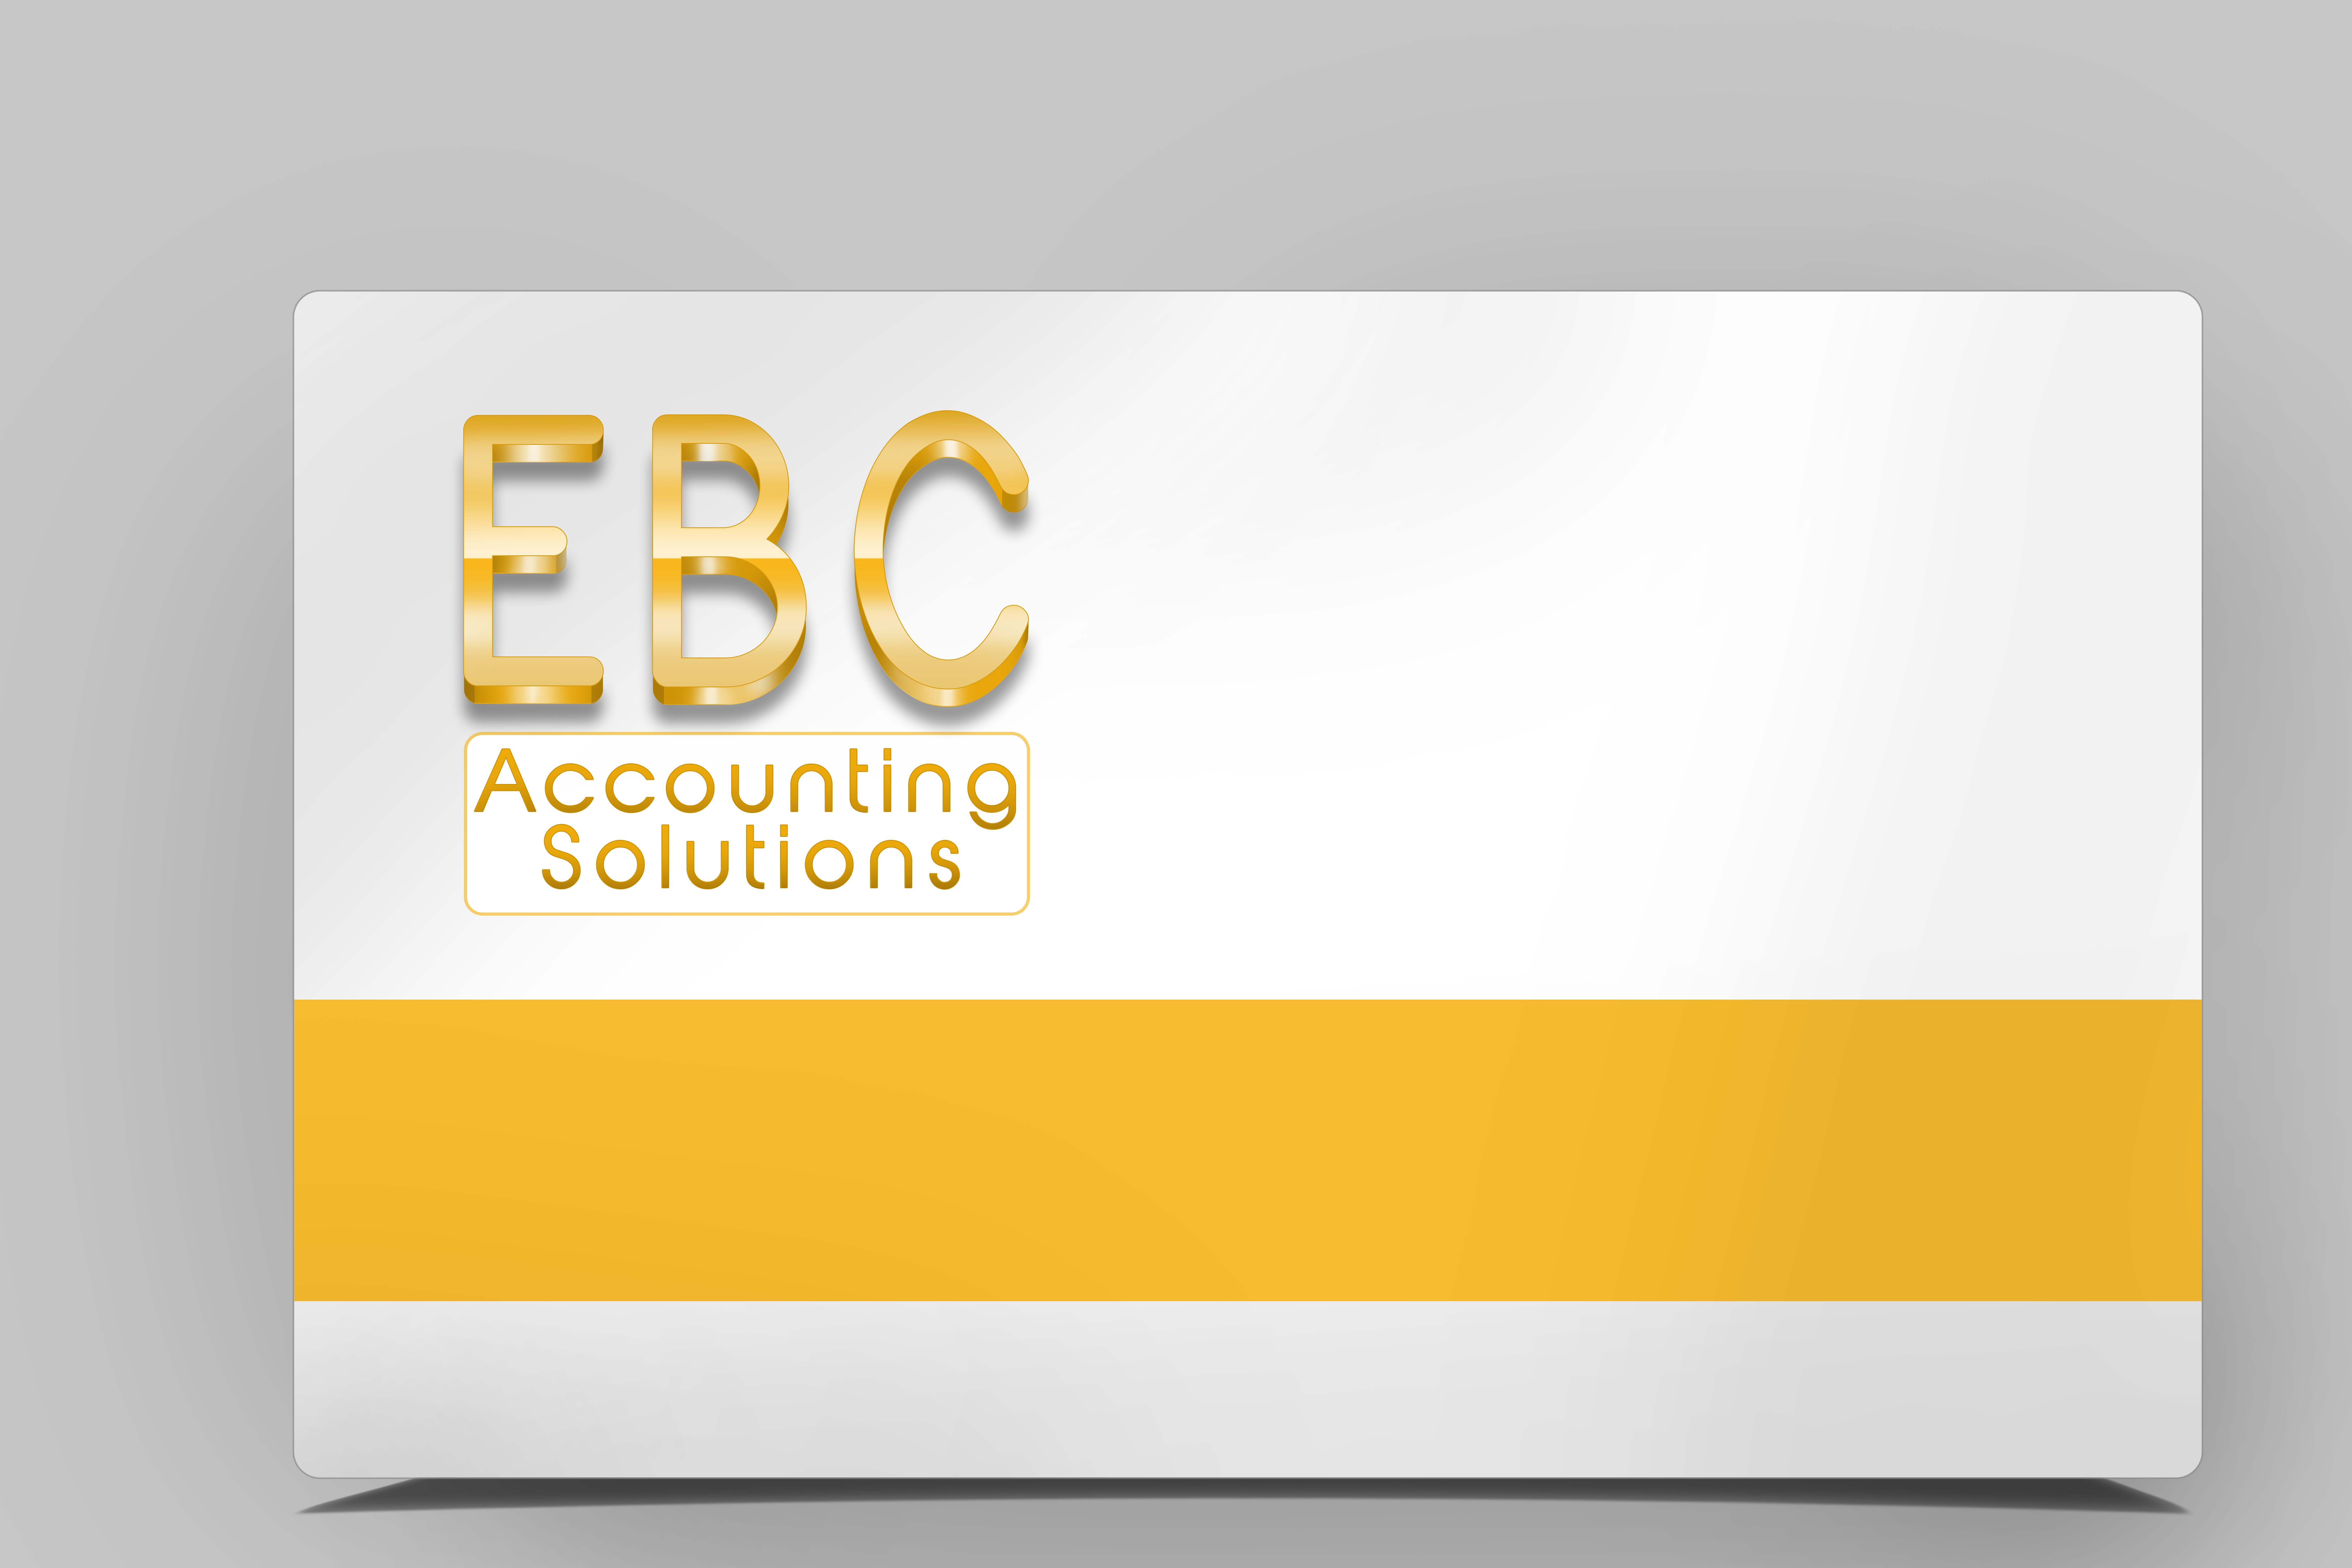 Logo Design by Sandip Kumar - Entry No. 214 in the Logo Design Contest New Logo Design for EBC Accounting Solutions.